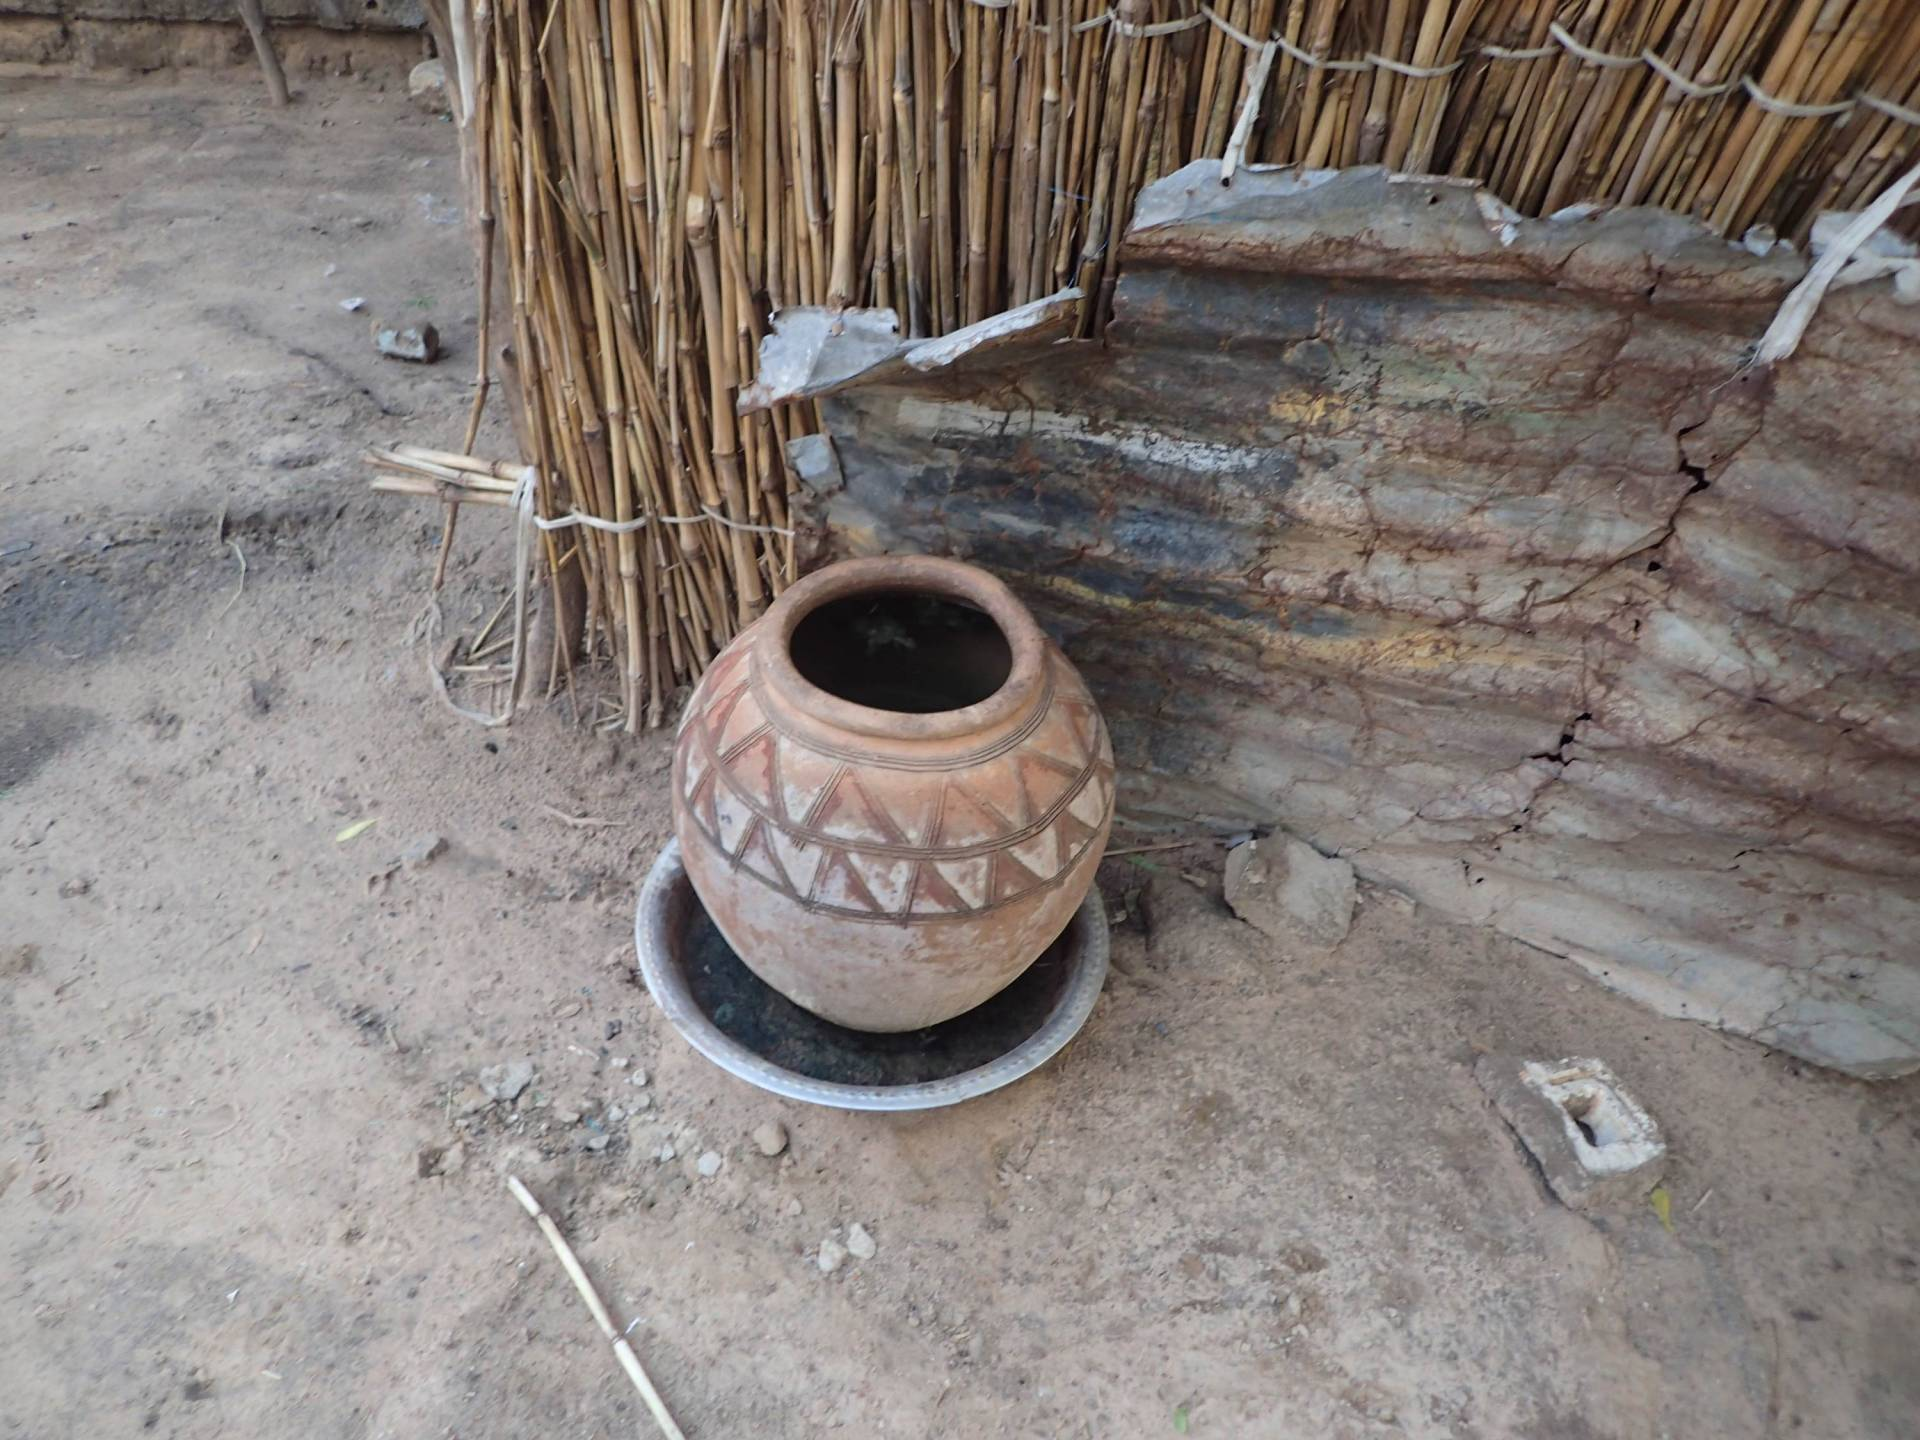 Clay pot used to store water in dry climate